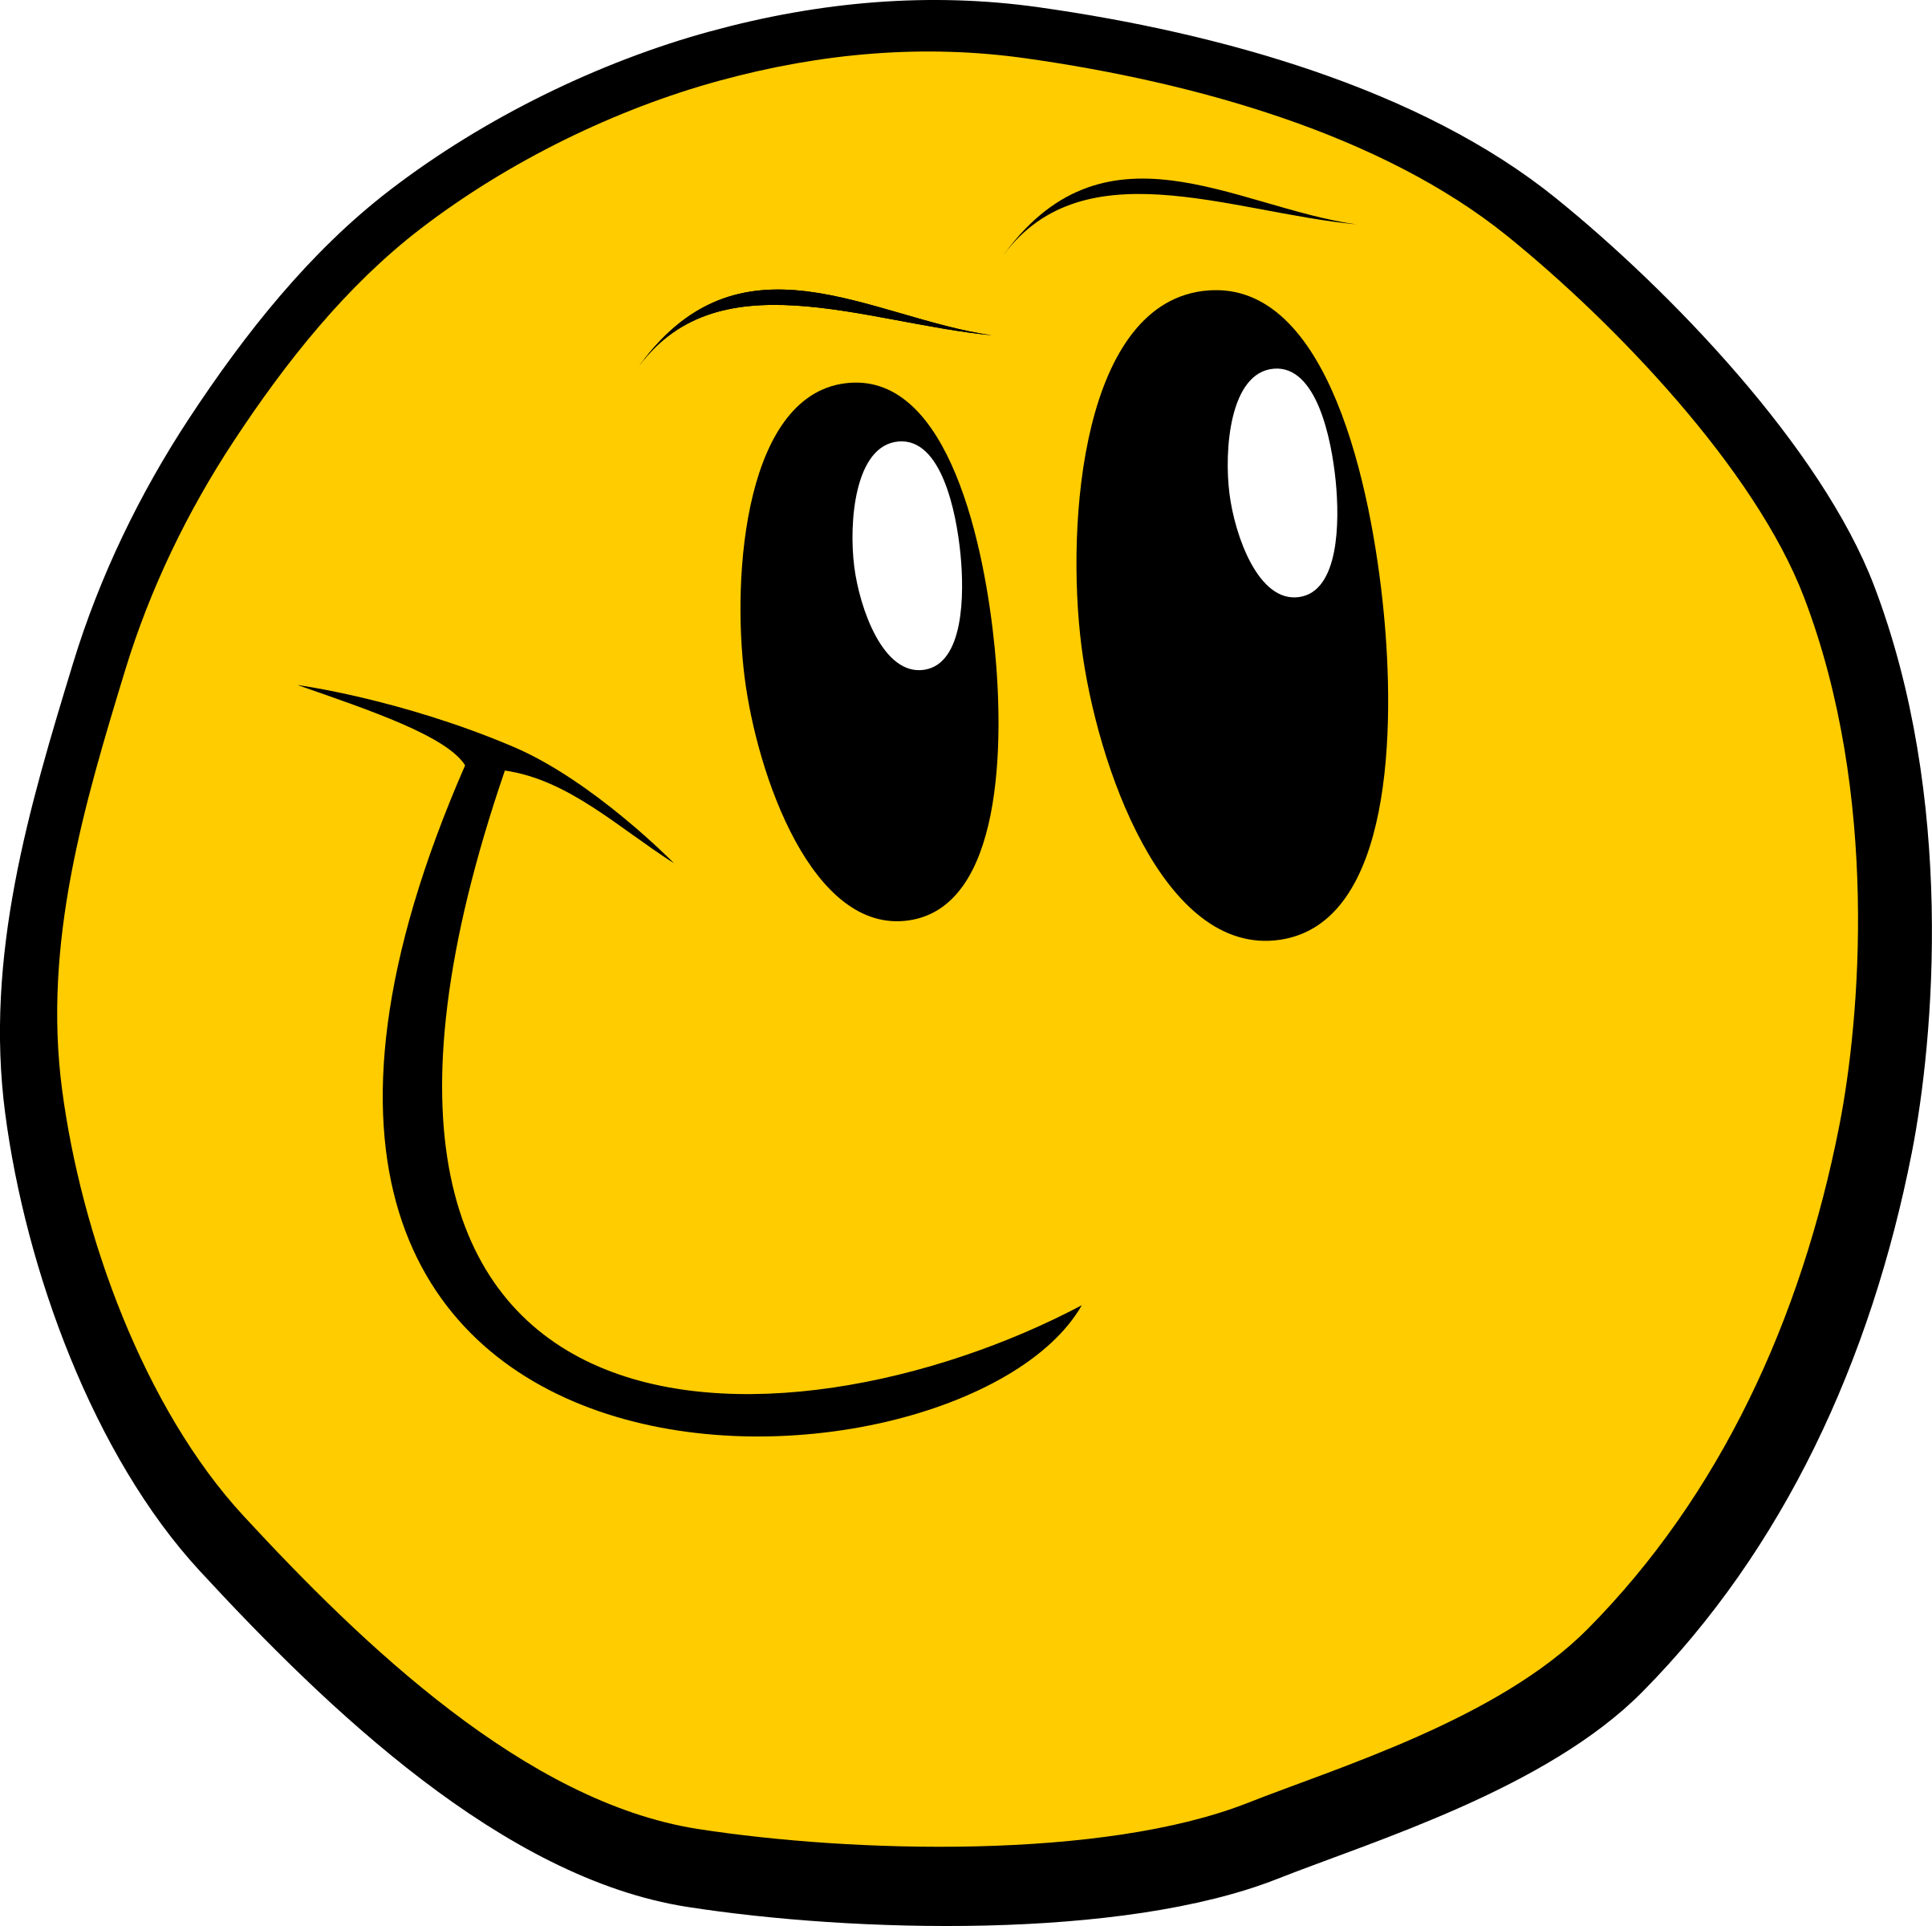 Email smiley faces clipart banner free library Smiley Face Clipart For Email - Free Clipart banner free library